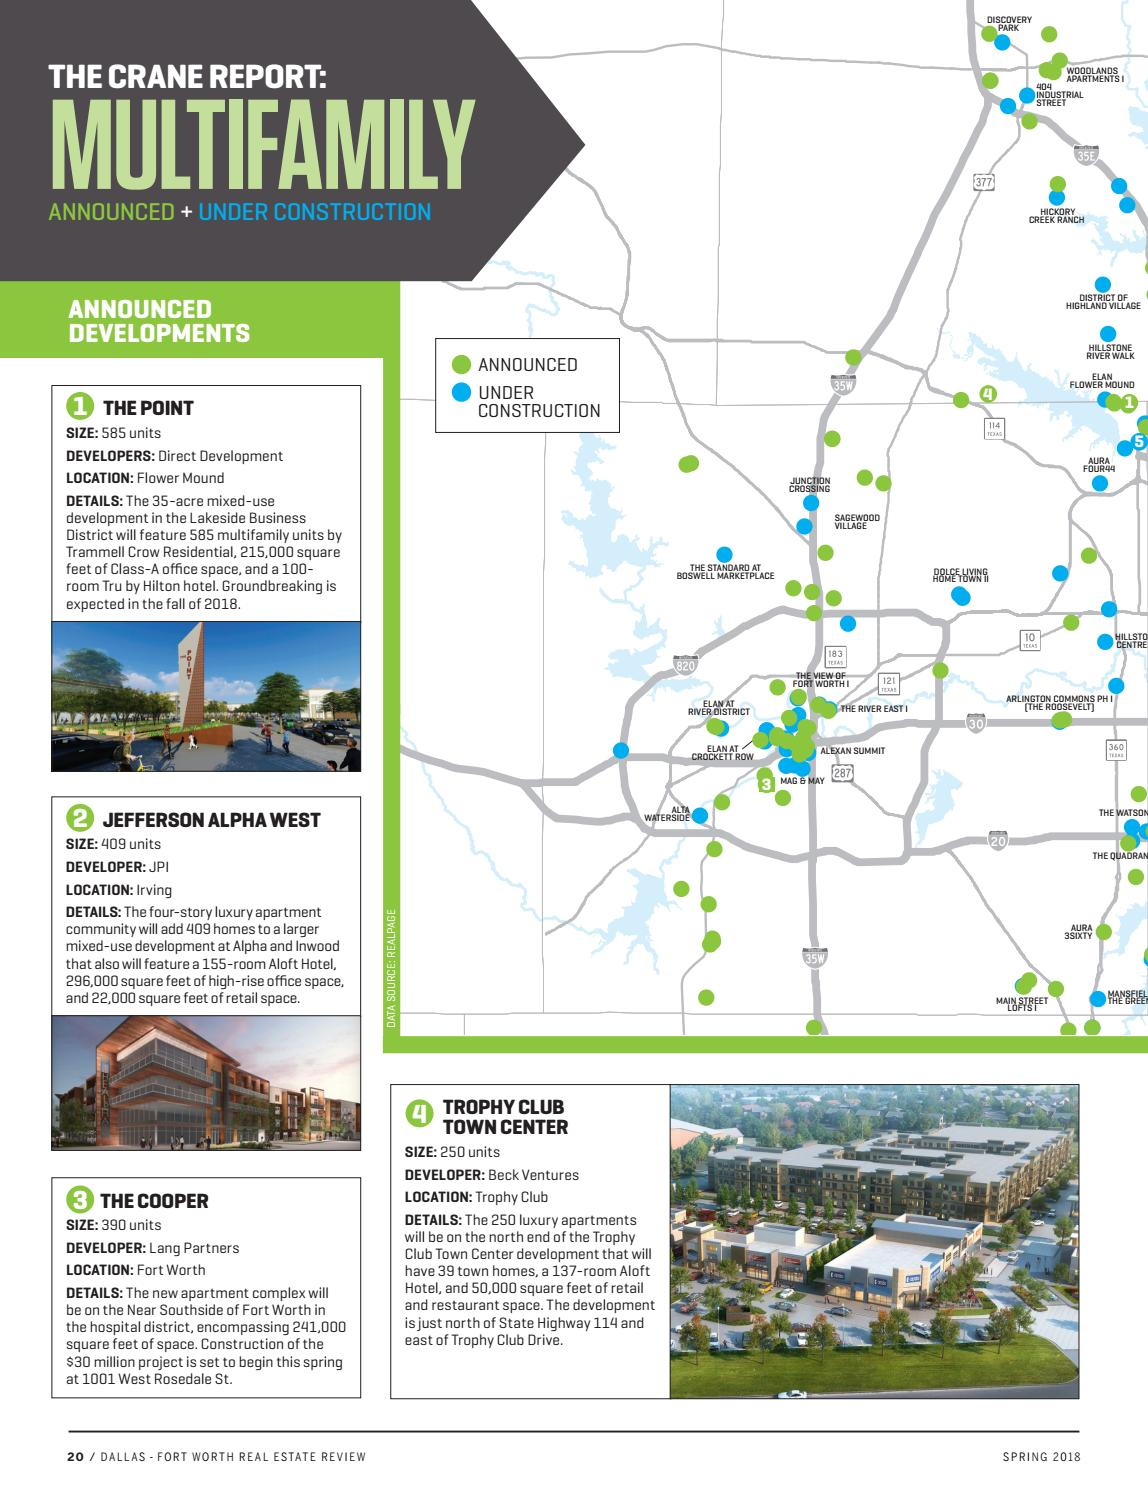 Dallas-Fort Worth Real Estate Review - Spring 2018 by Dallas